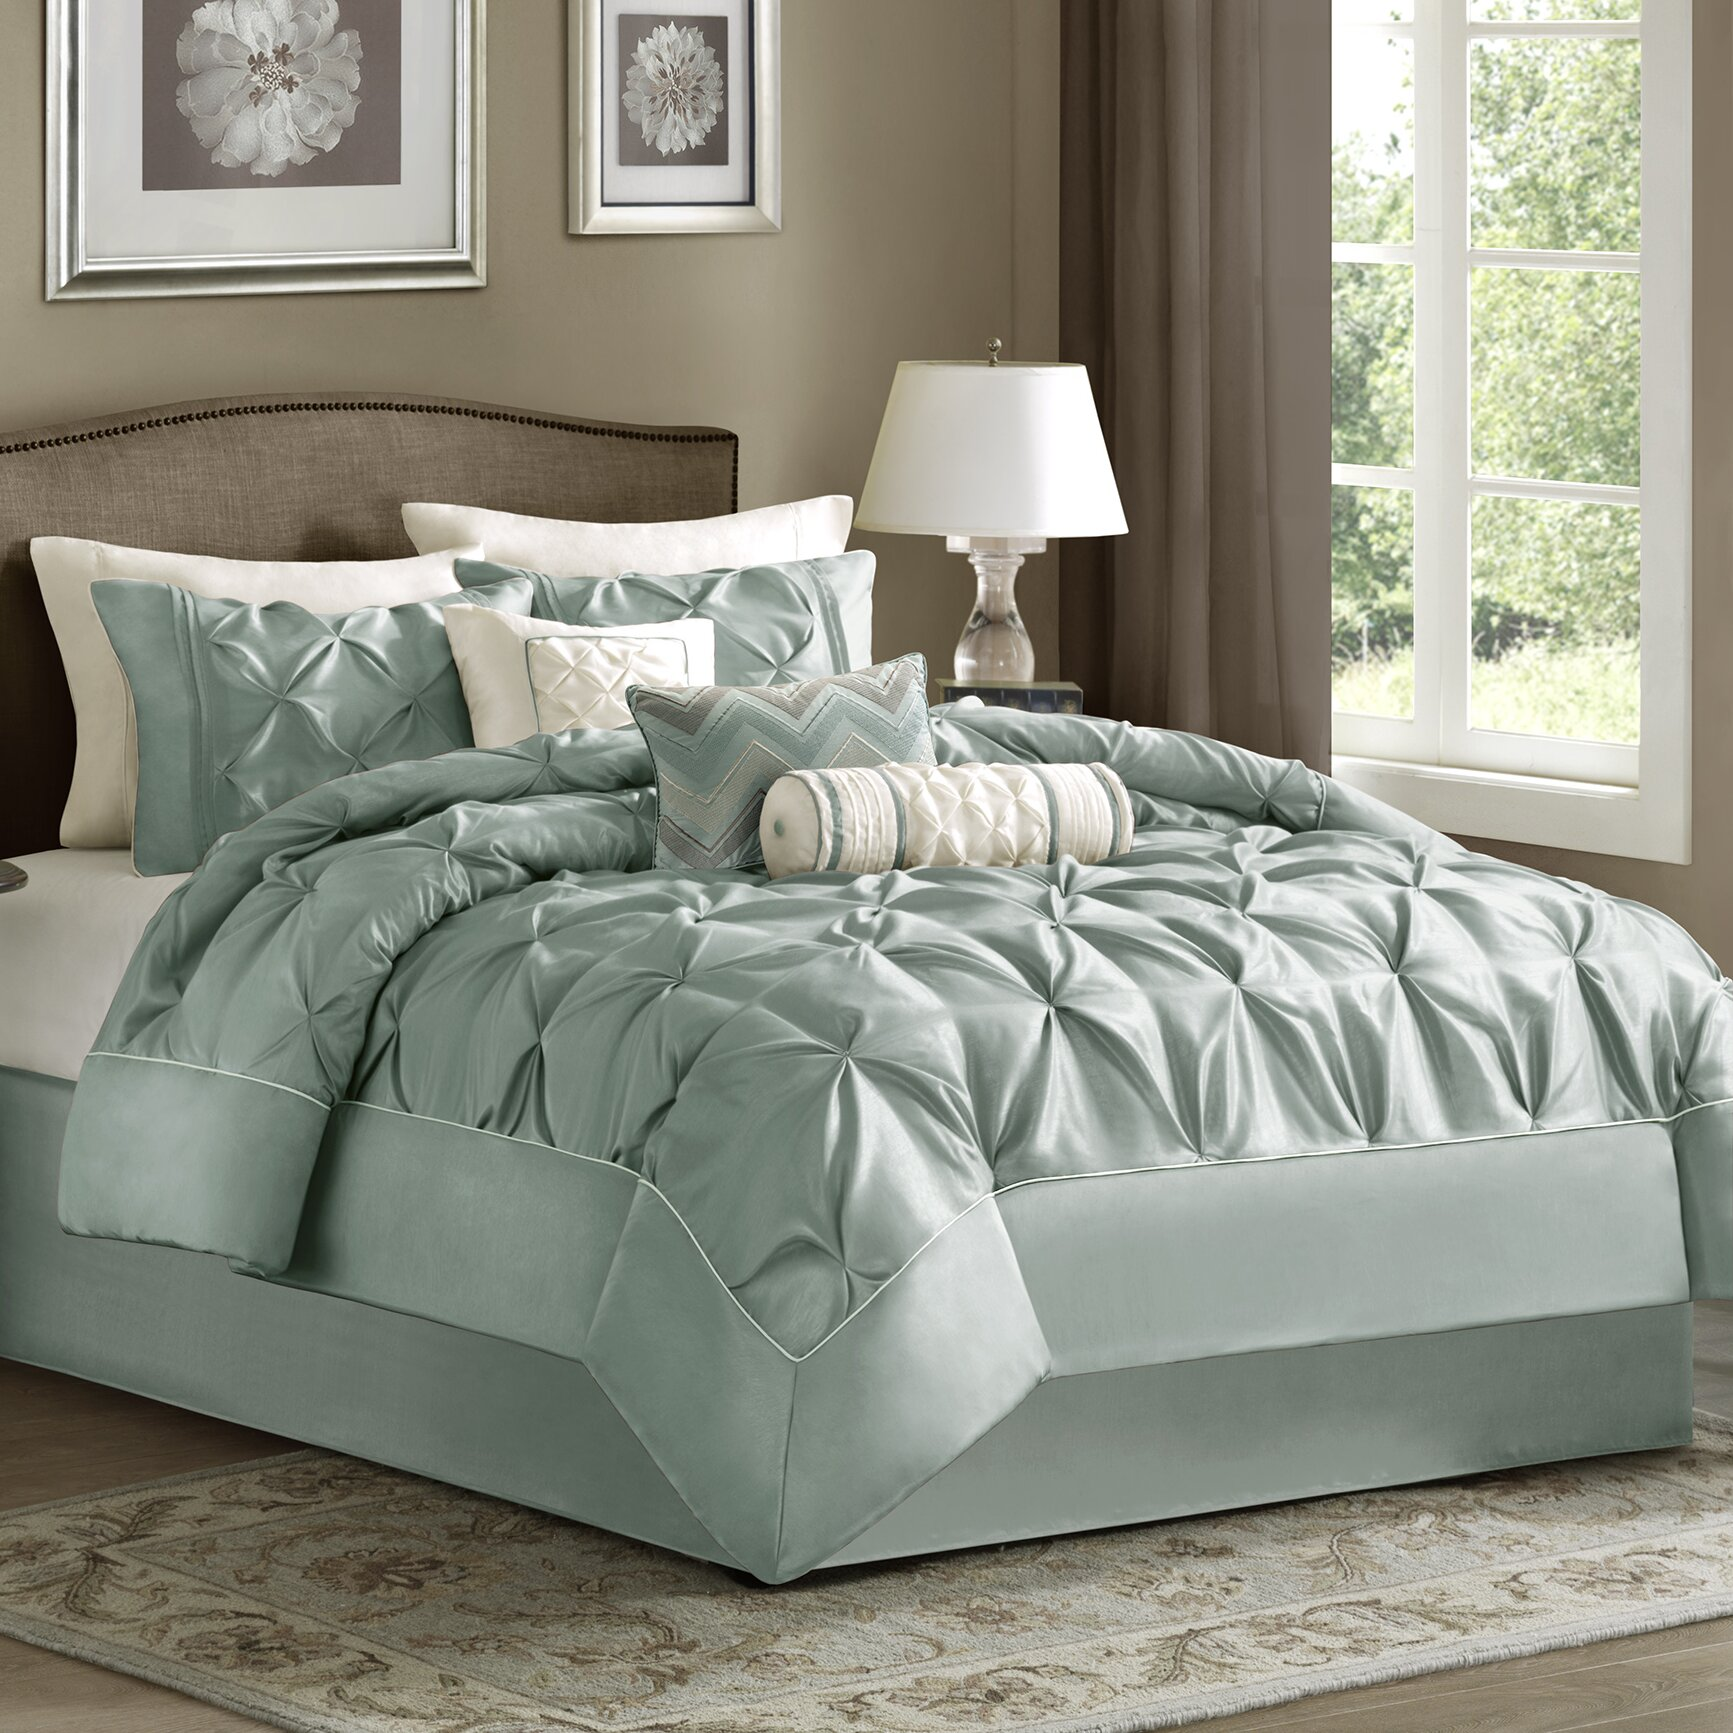 california king quilt sets  quilting galleries -  california king comforter sets you ll love wayfair